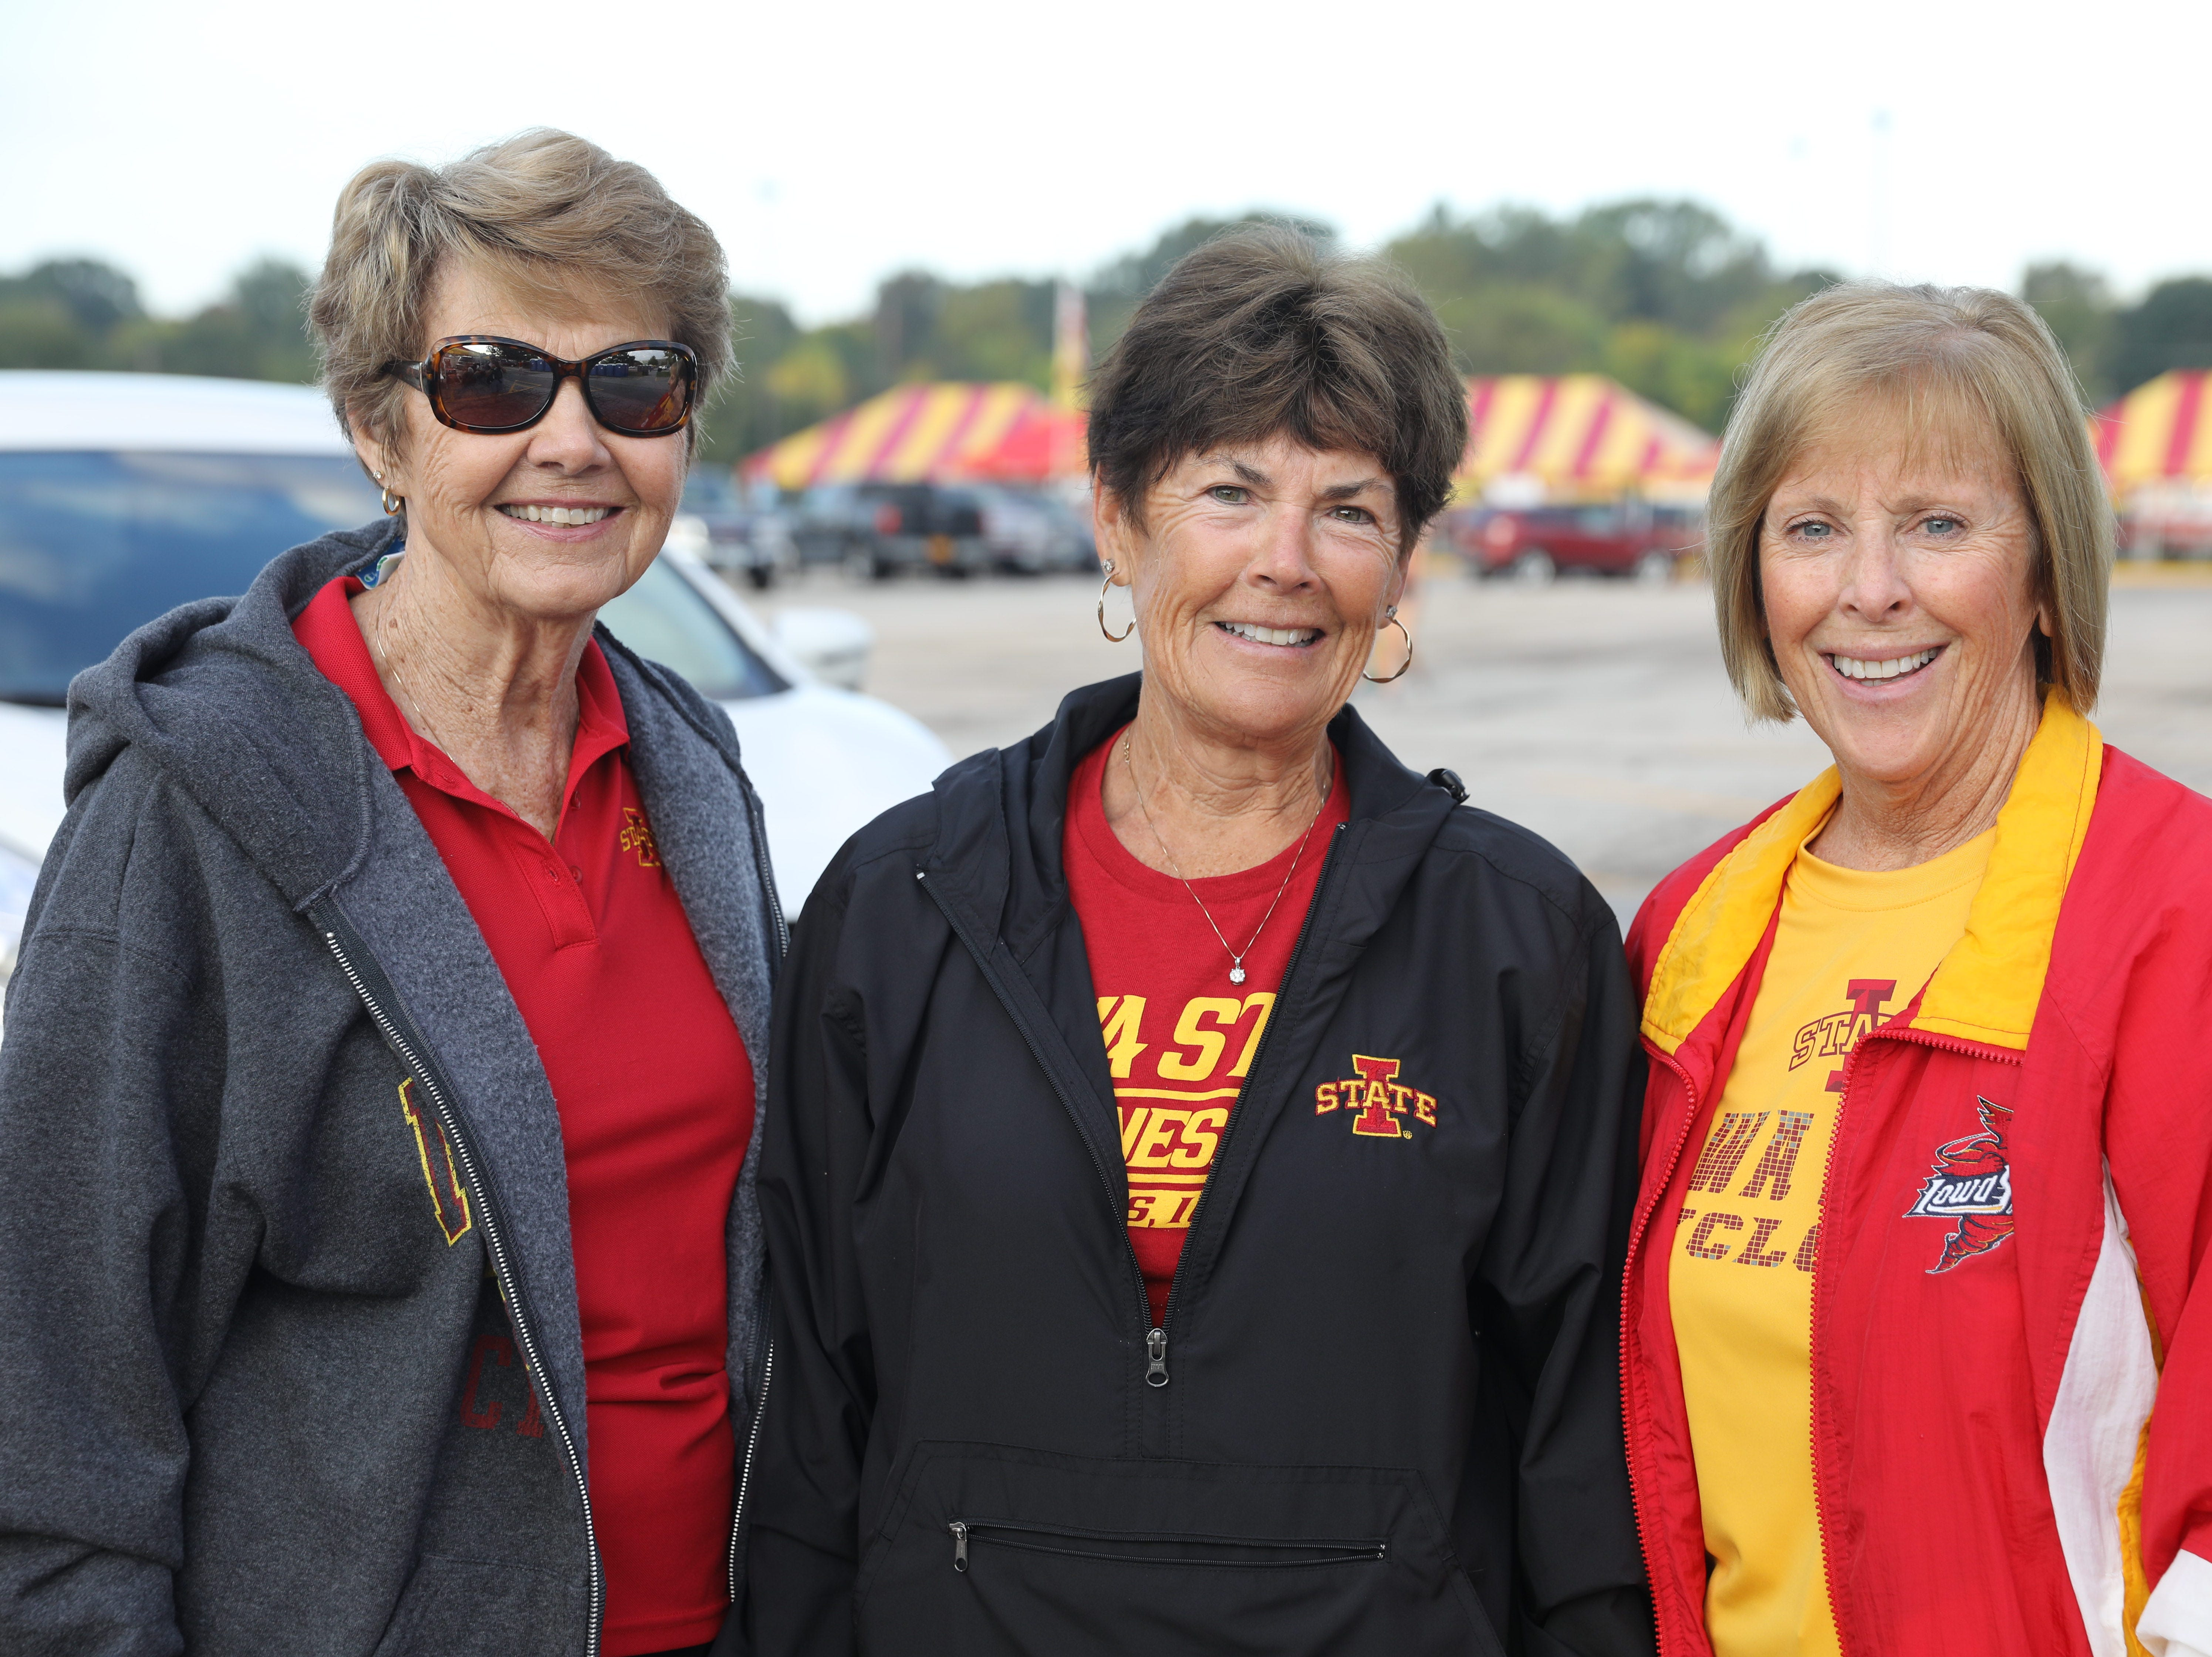 Laura Mattoon of Ankeny (from left), Nancy Heanthman of Ames, and Deedee Johnson of Okoboji, Saturday, Sept. 15, 2018, before the Iowa State football game against Oklahoma in Ames.